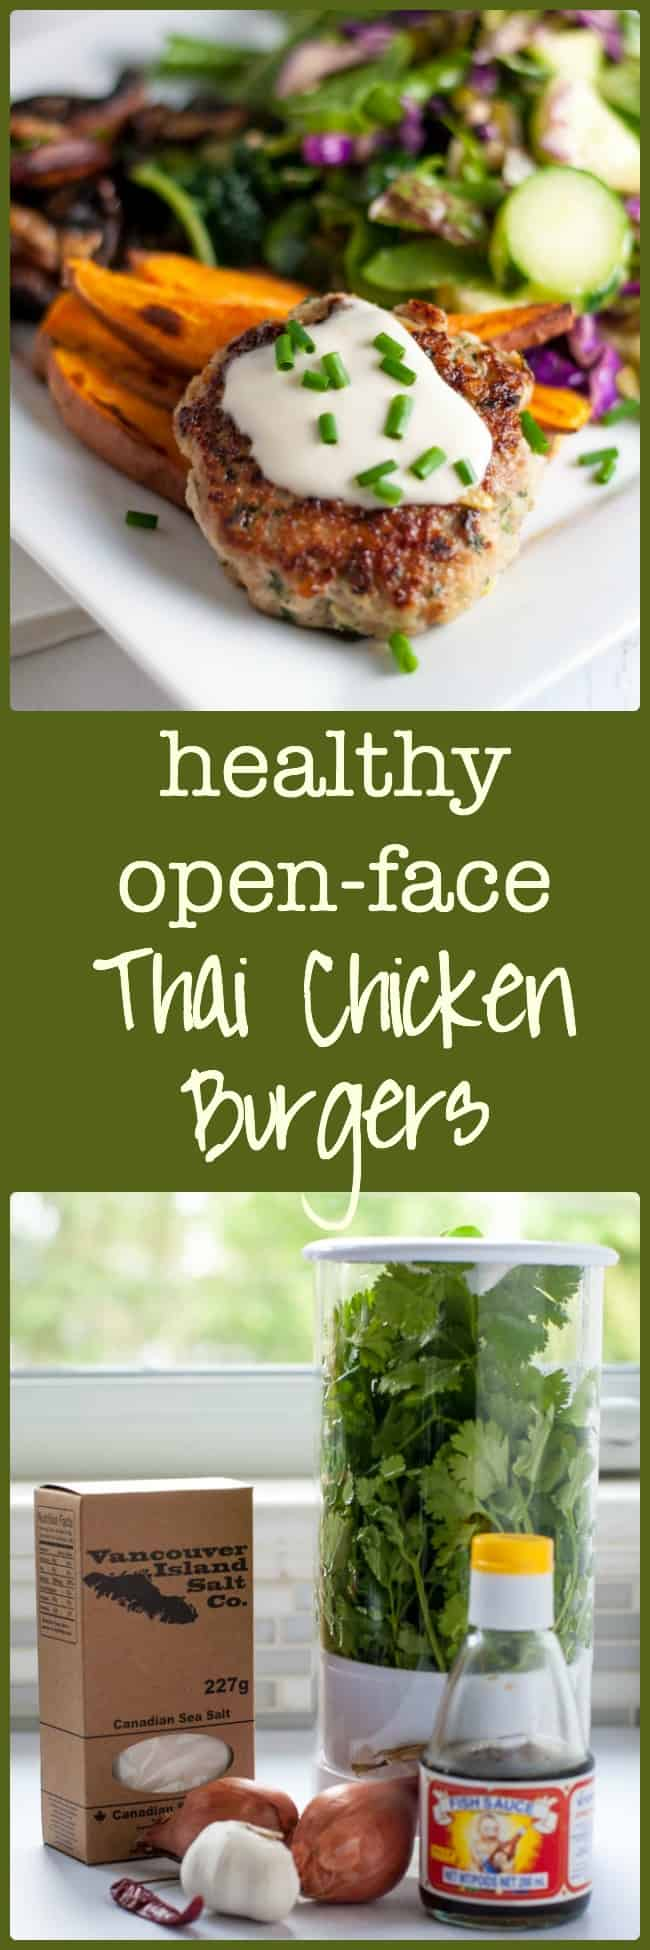 These Paleo Thai Chicken Burgers are incredibly flavourful and are packed with protein. Serve as an open-face burger with a side salad to make a paleo and gluten-free meal.